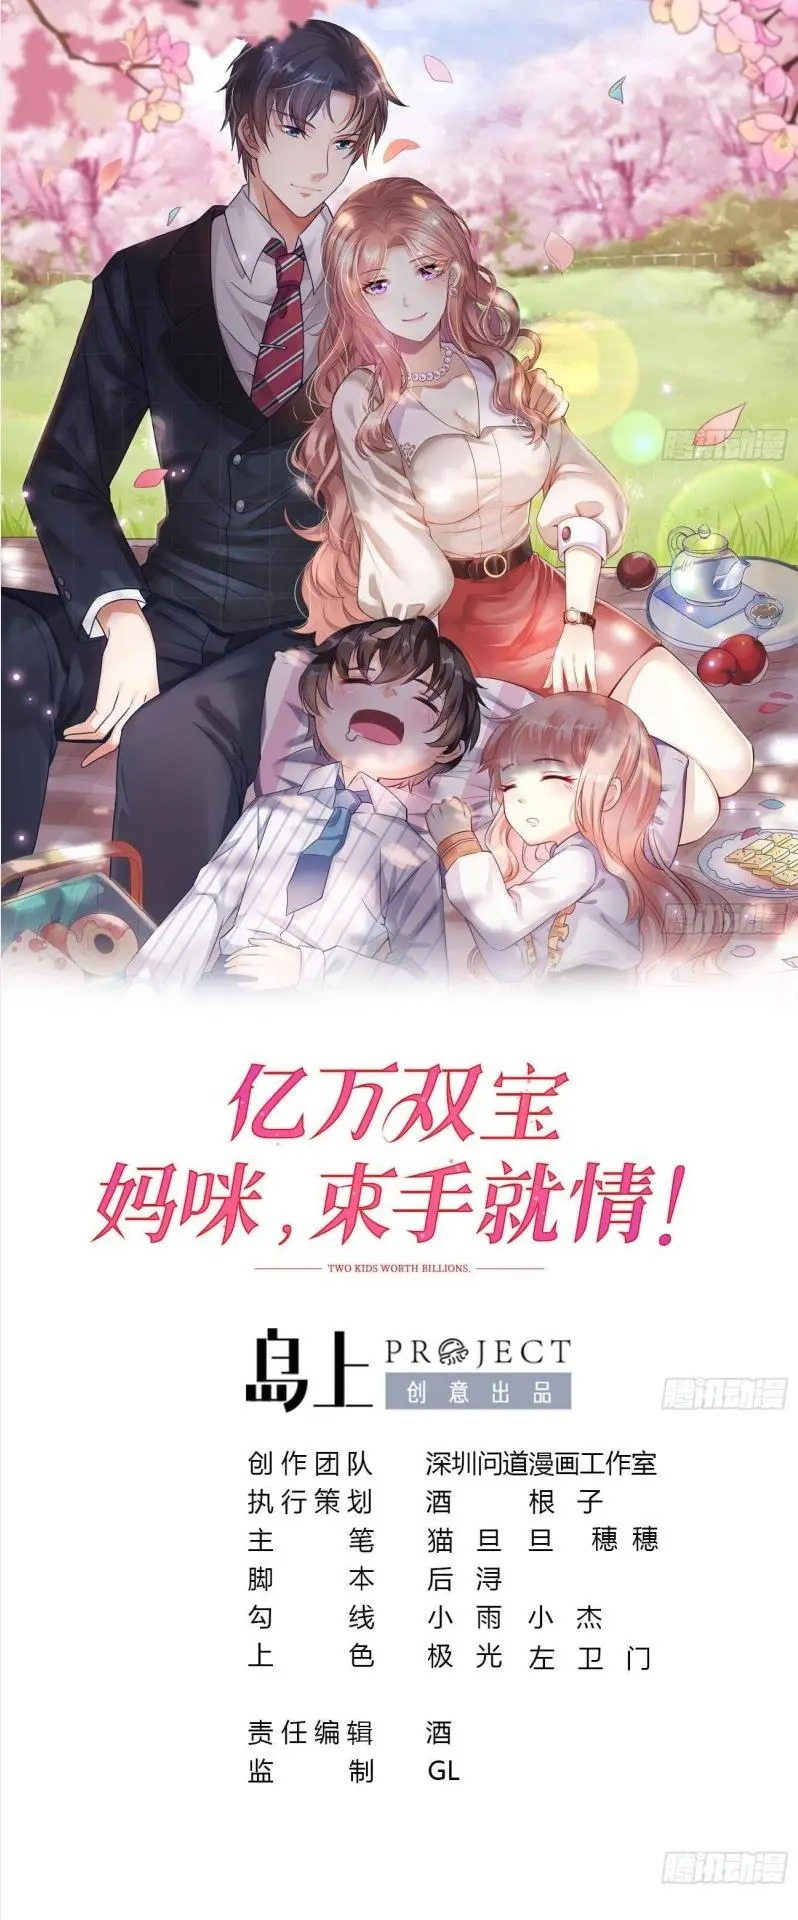 Naughty Child And Mommy, Please Wait To Be Loved - chapter 19 - #1